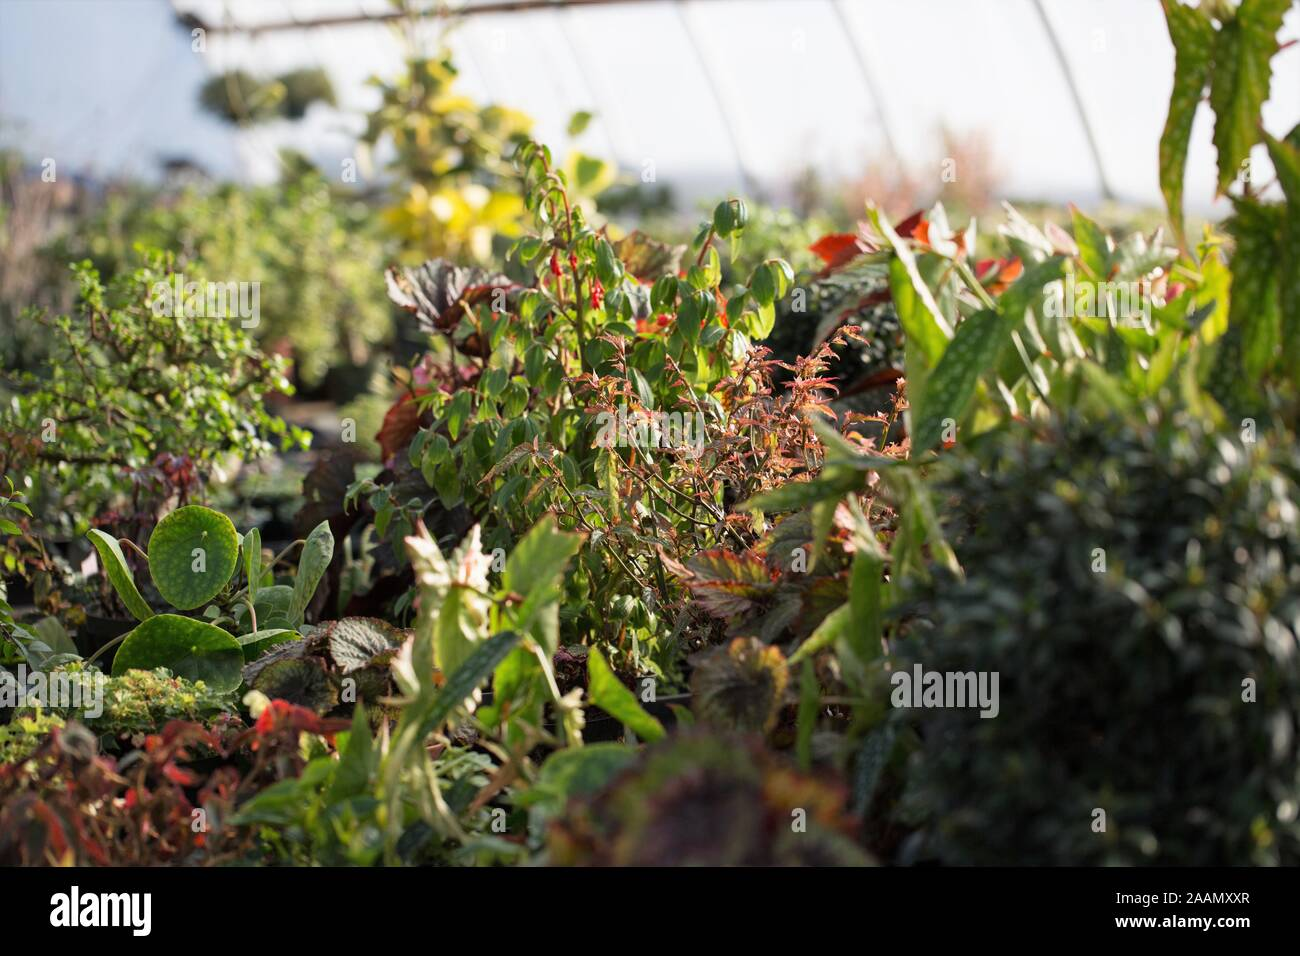 Houseplants growing in a greenhouse. Stock Photo